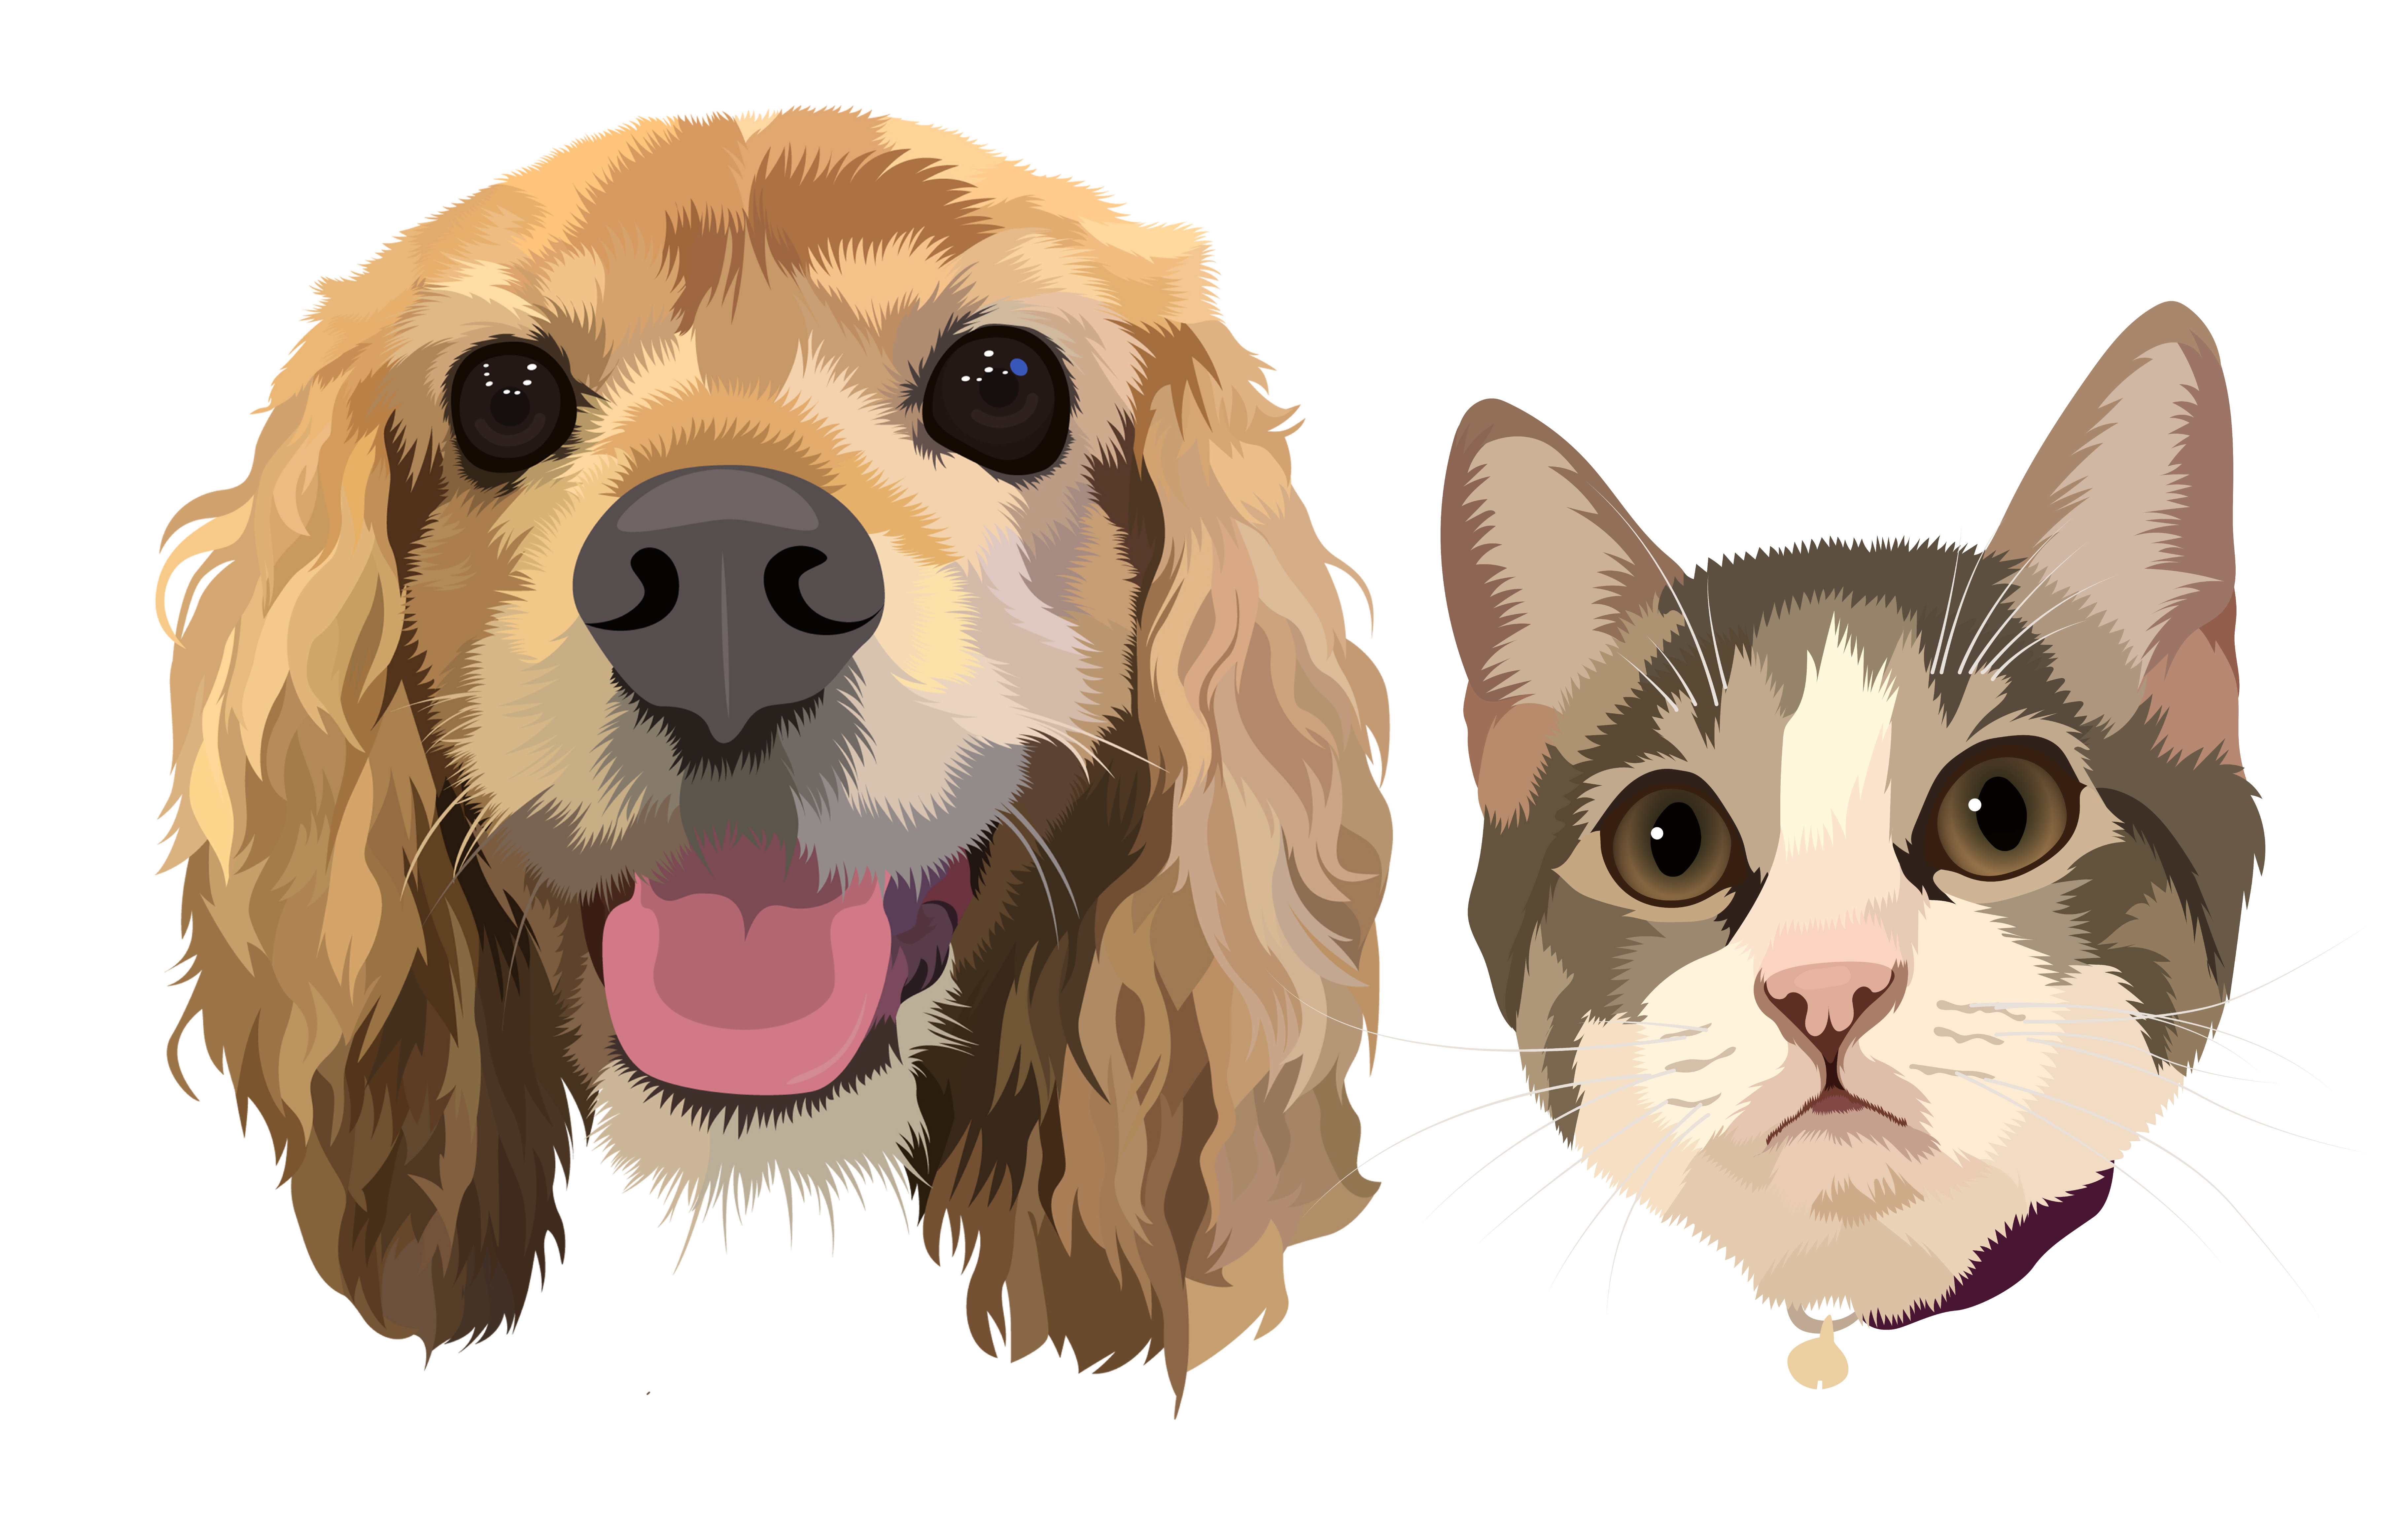 Draw Vector Illustration Your Dog Cat Or Pet 12 Hrs By Deshi Cutter